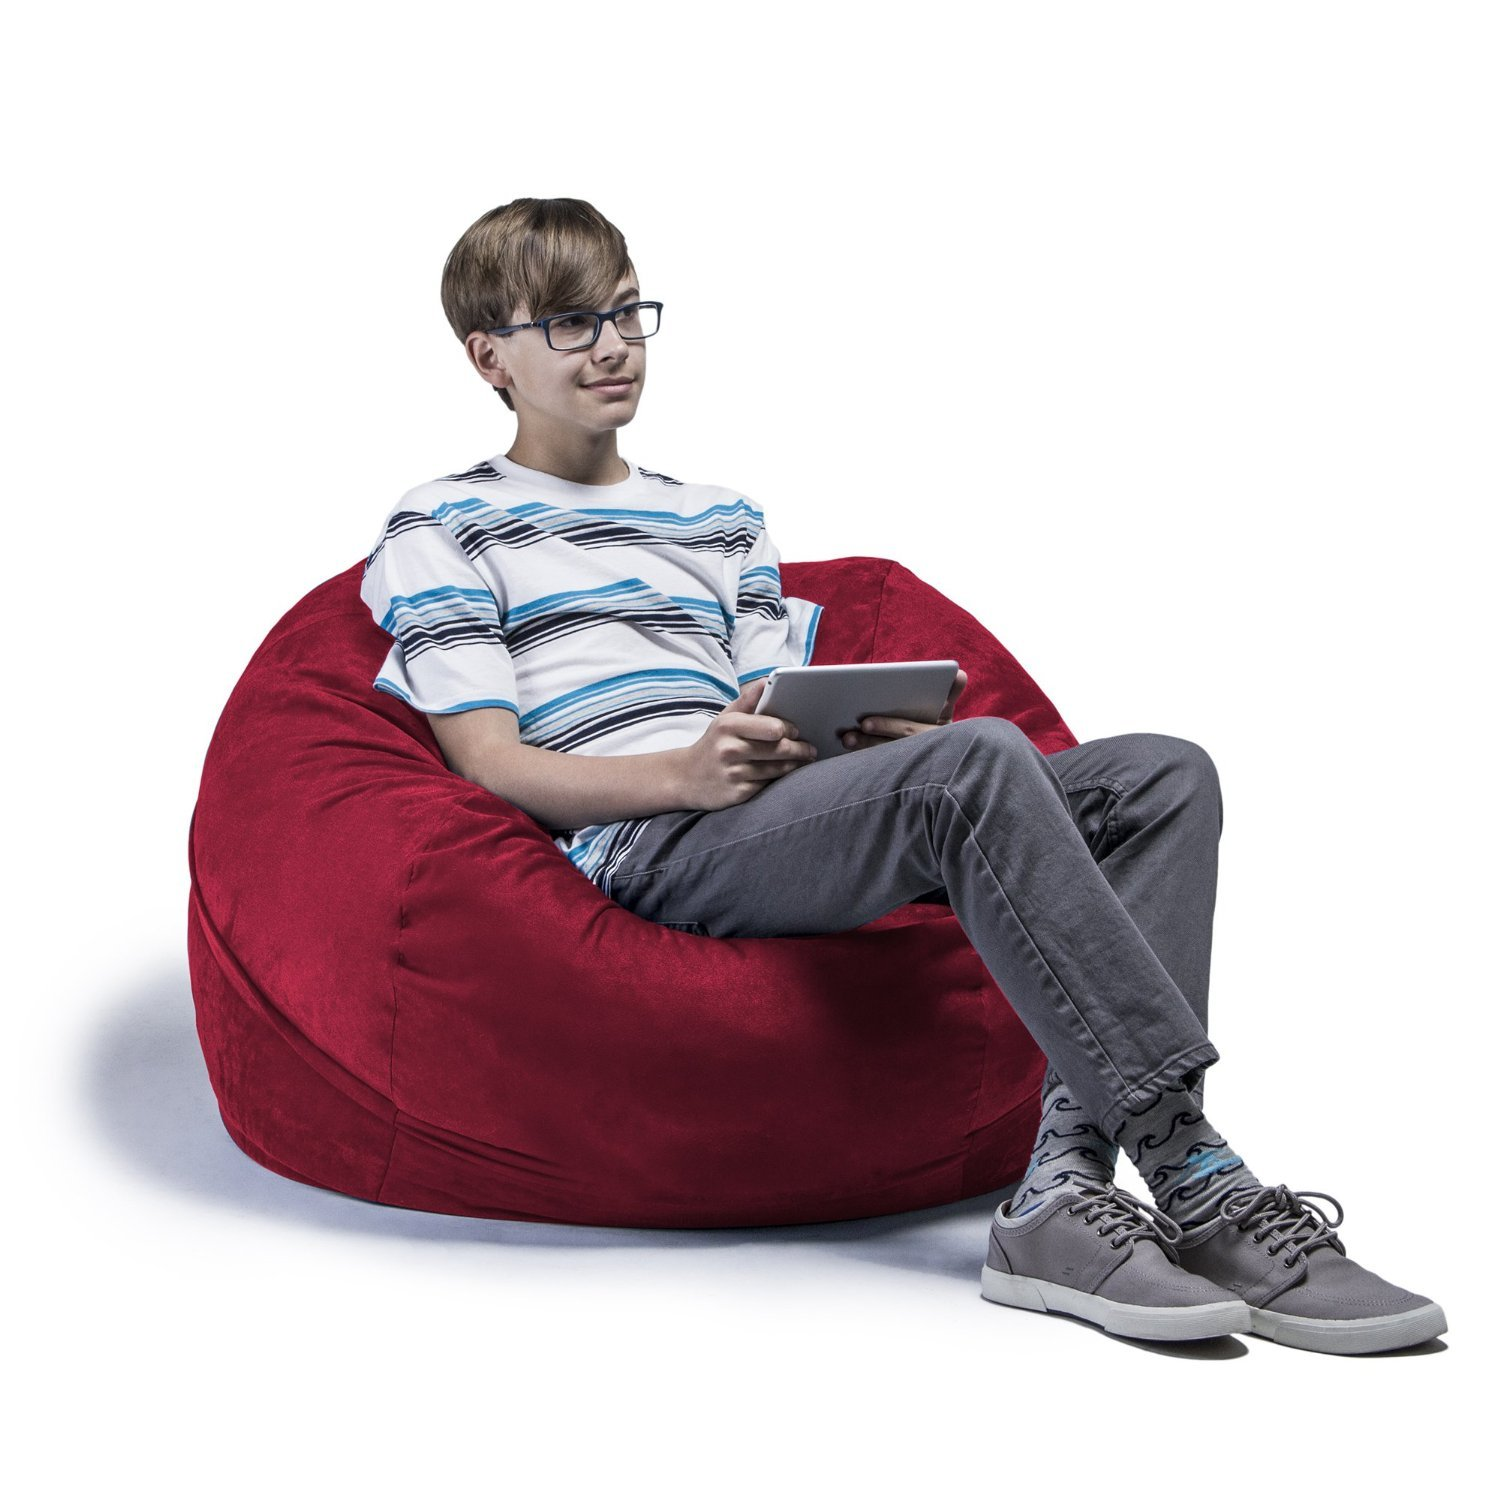 Jaxx Saxx 3' Bean Bag Chair, Cinnabar